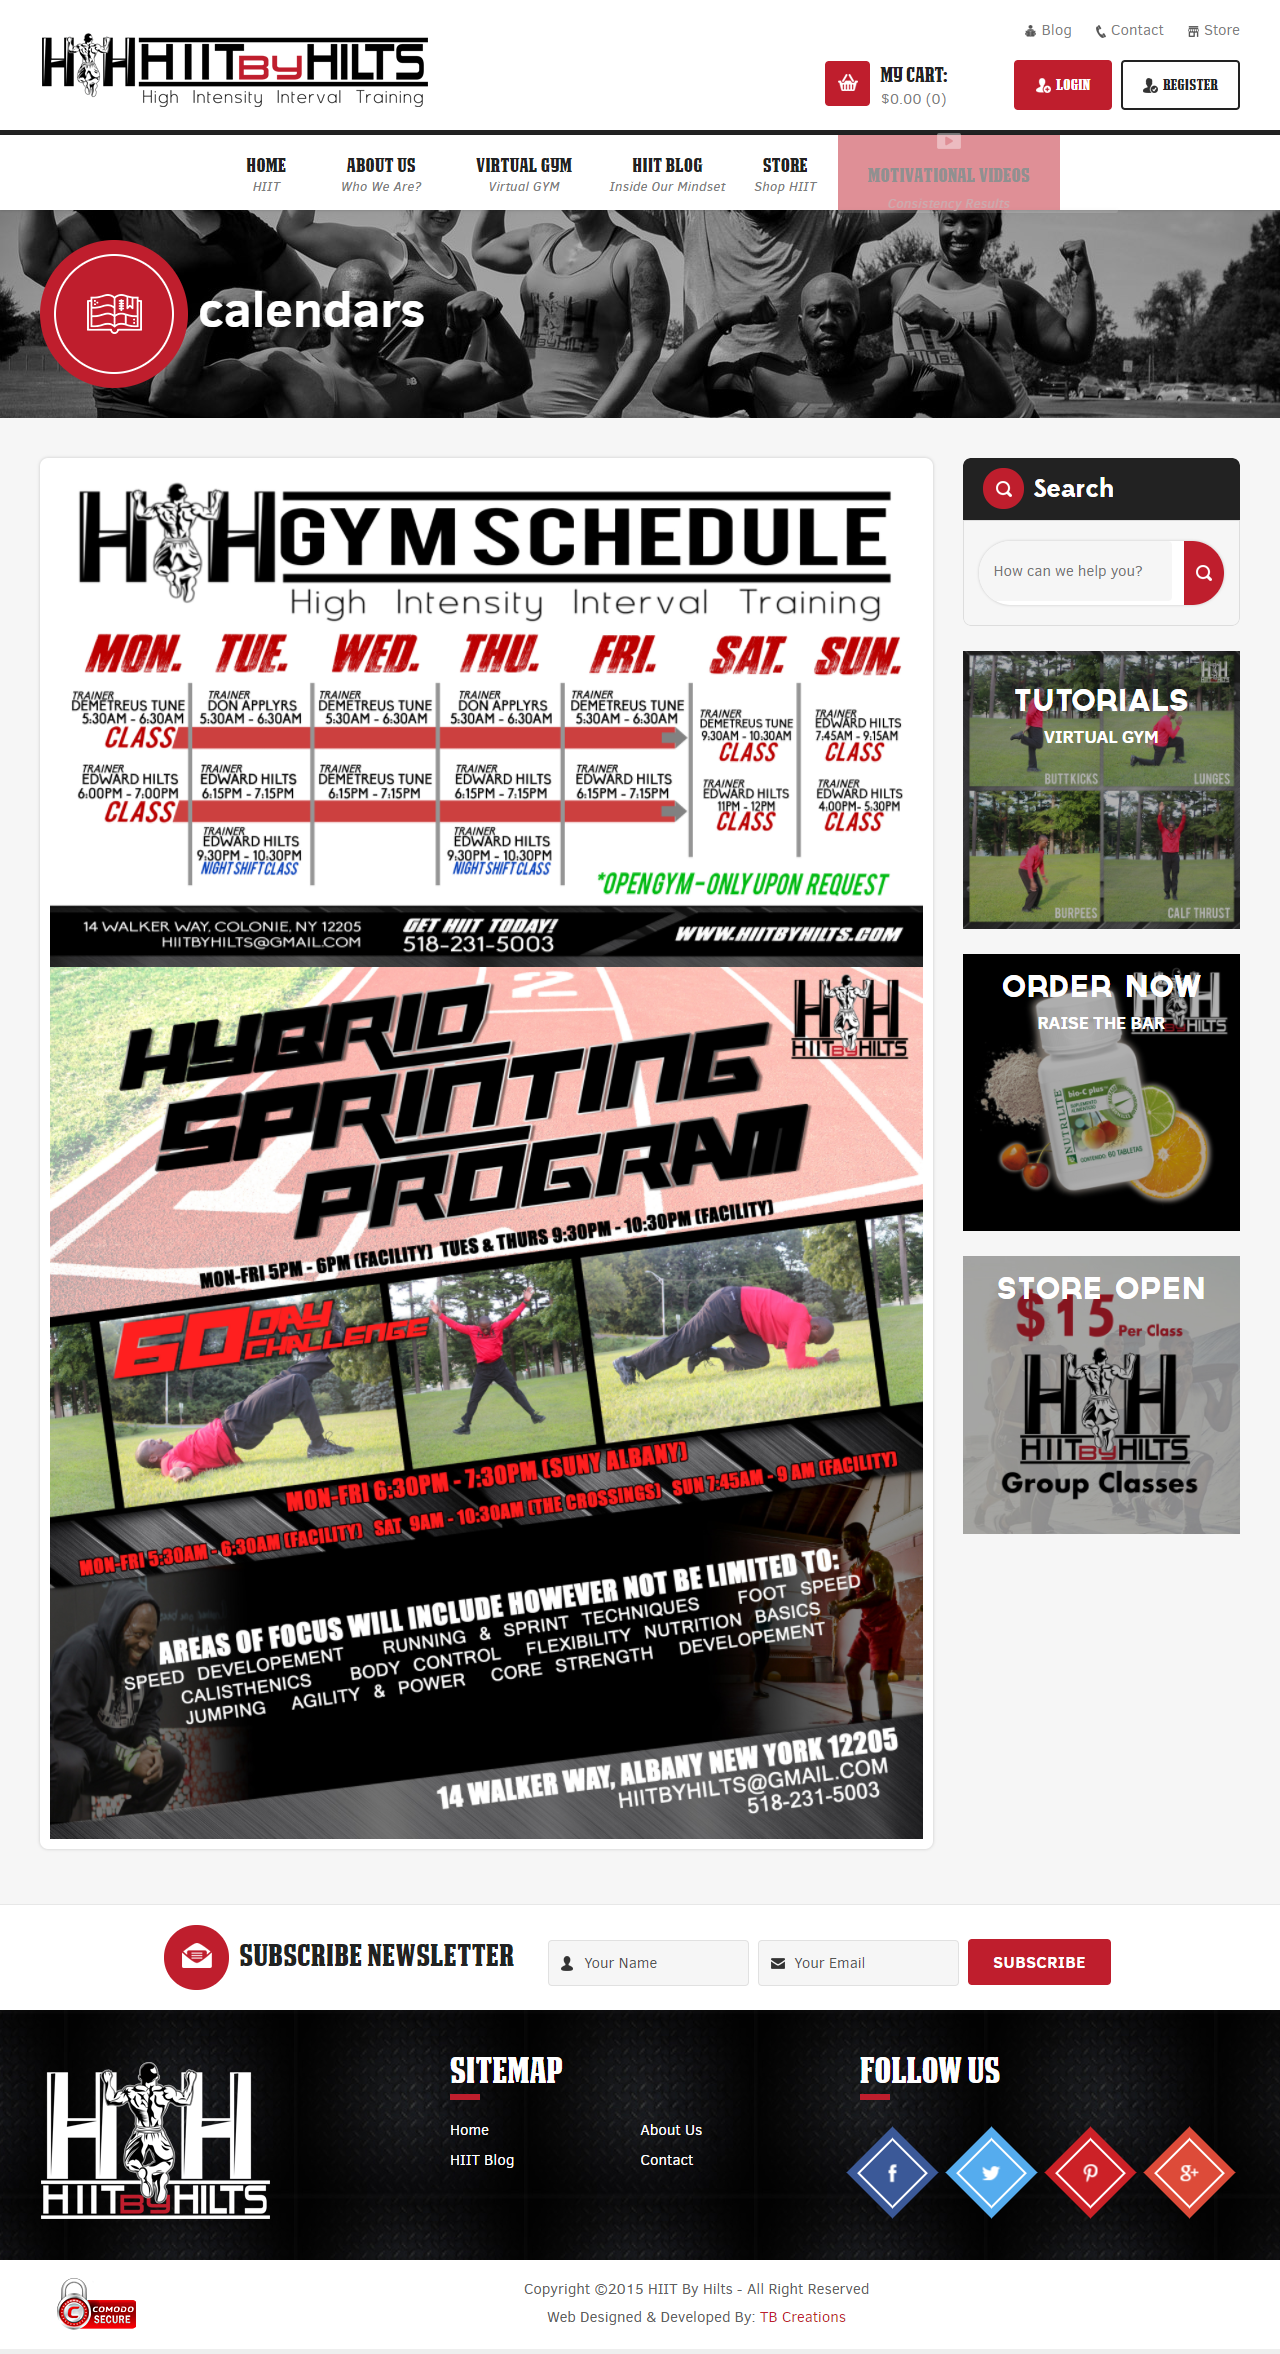 HIIT by Hilts